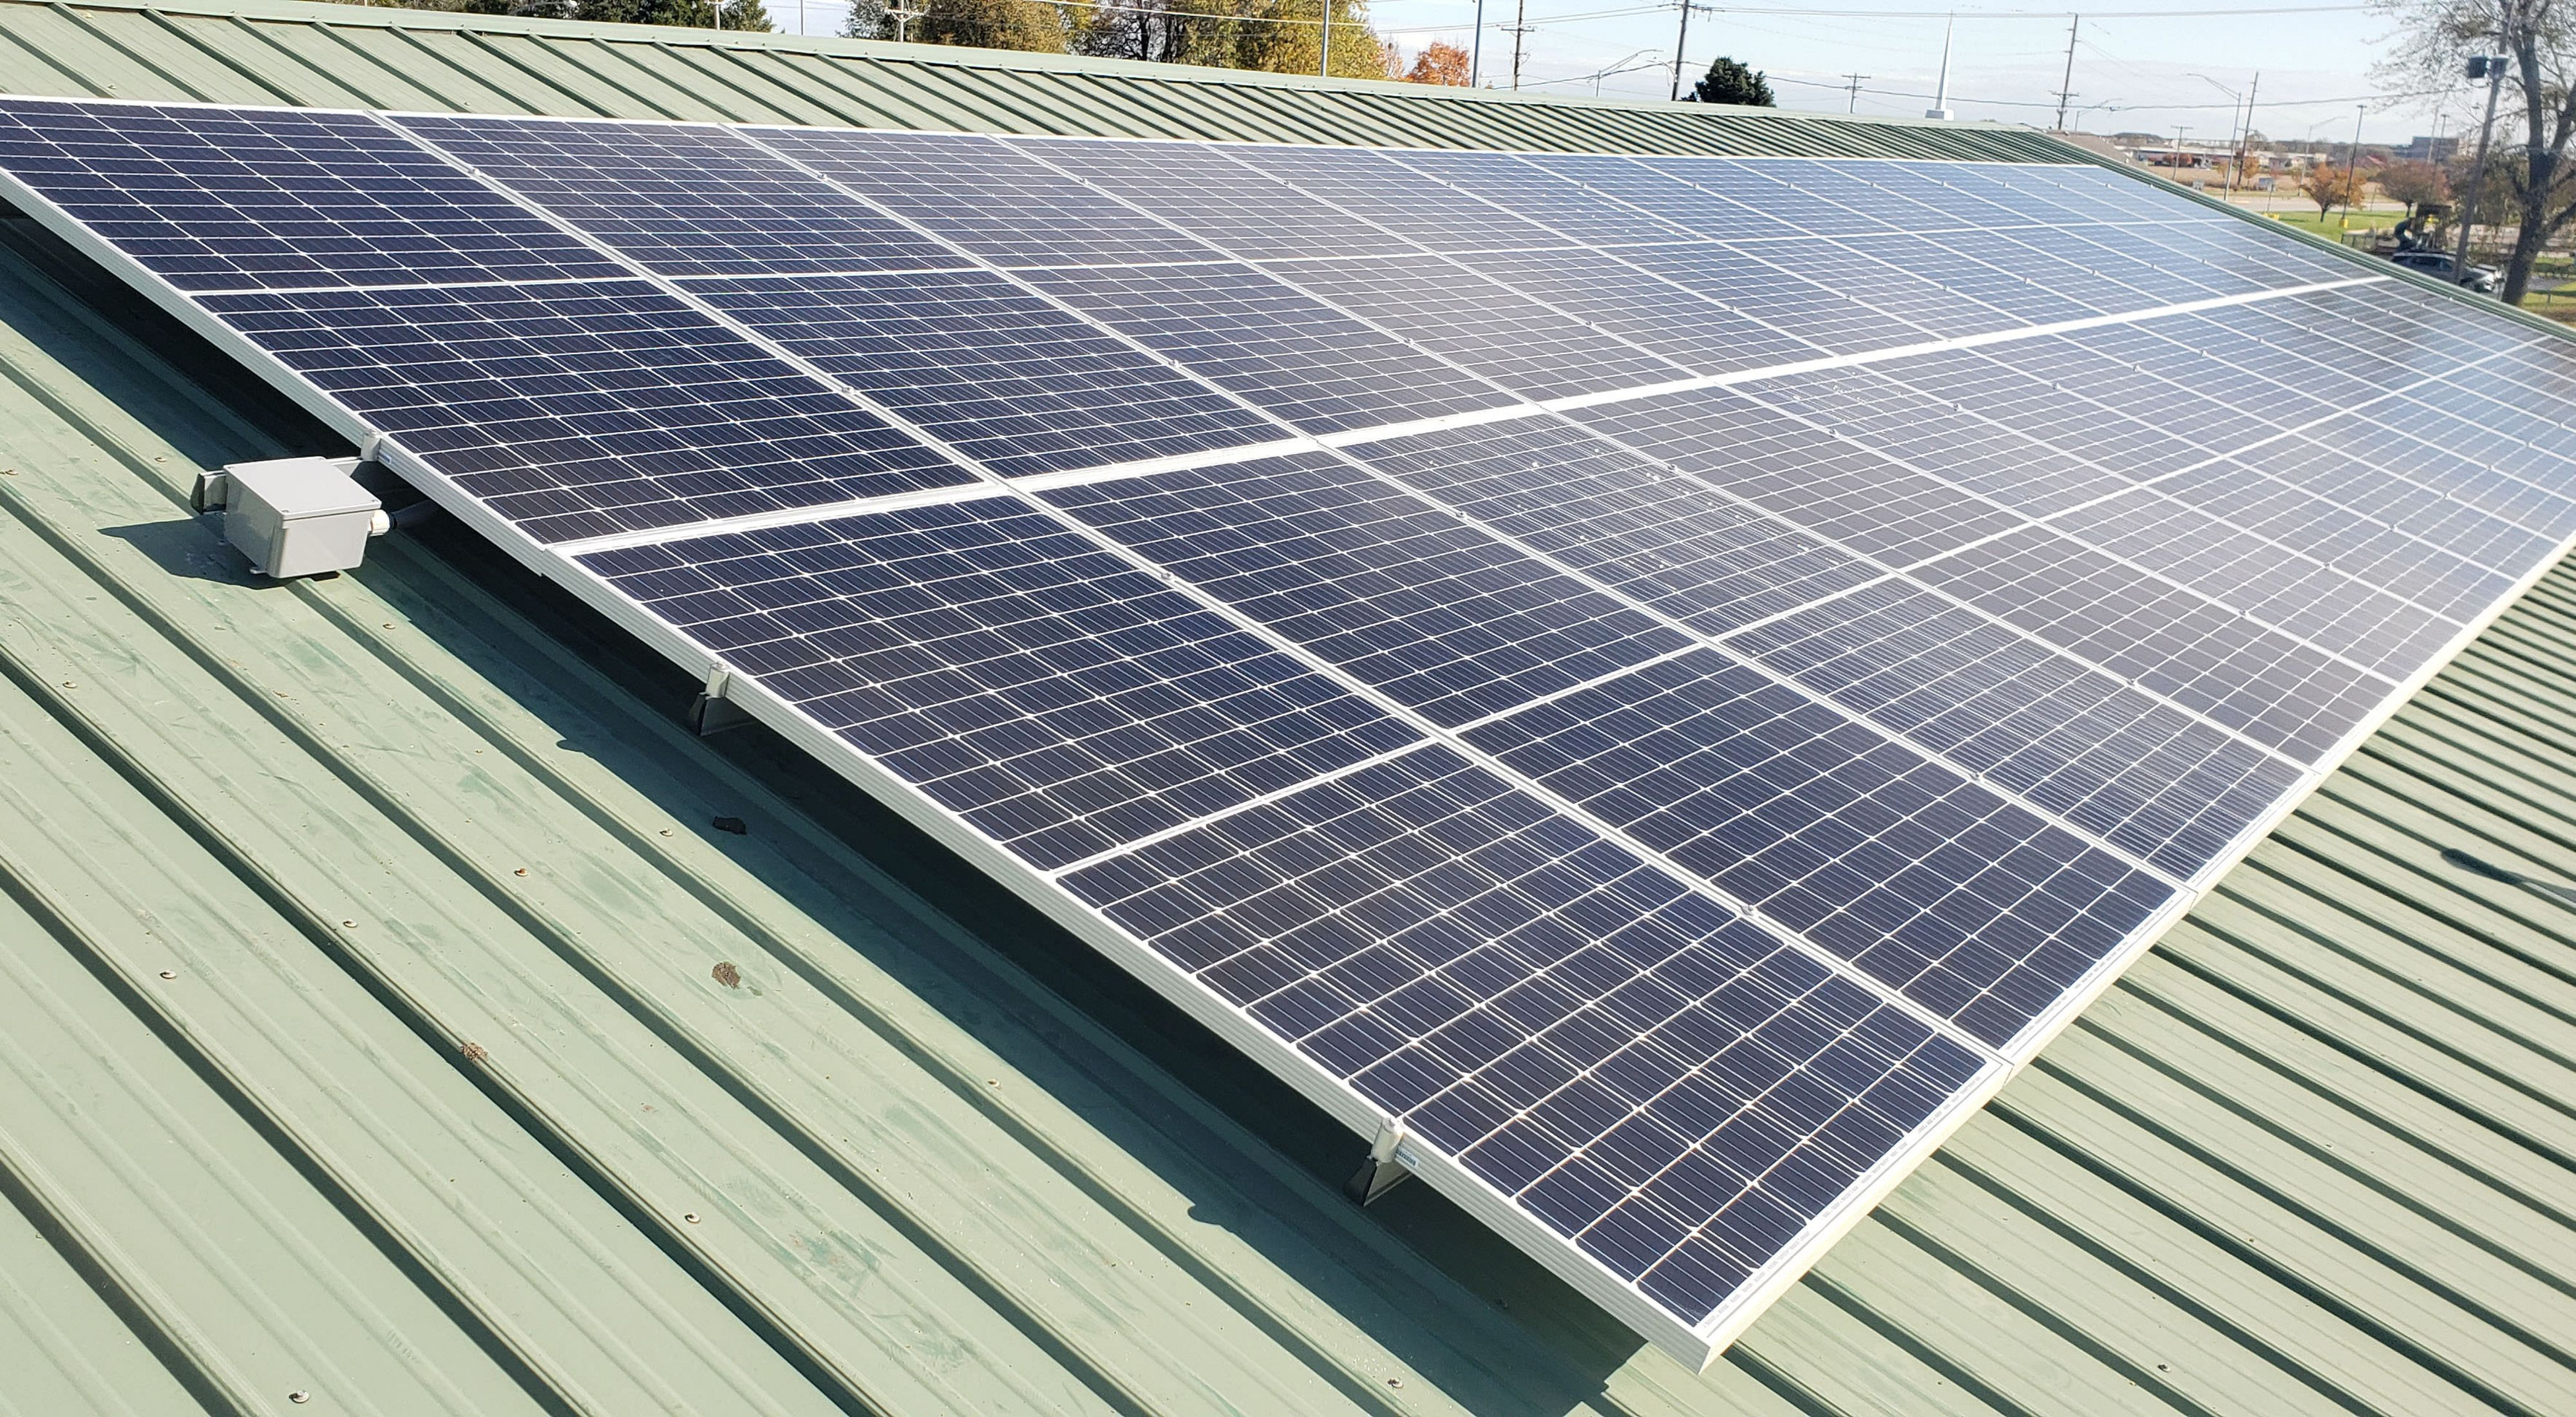 Photo of a rooftop solar installation in Iowa.